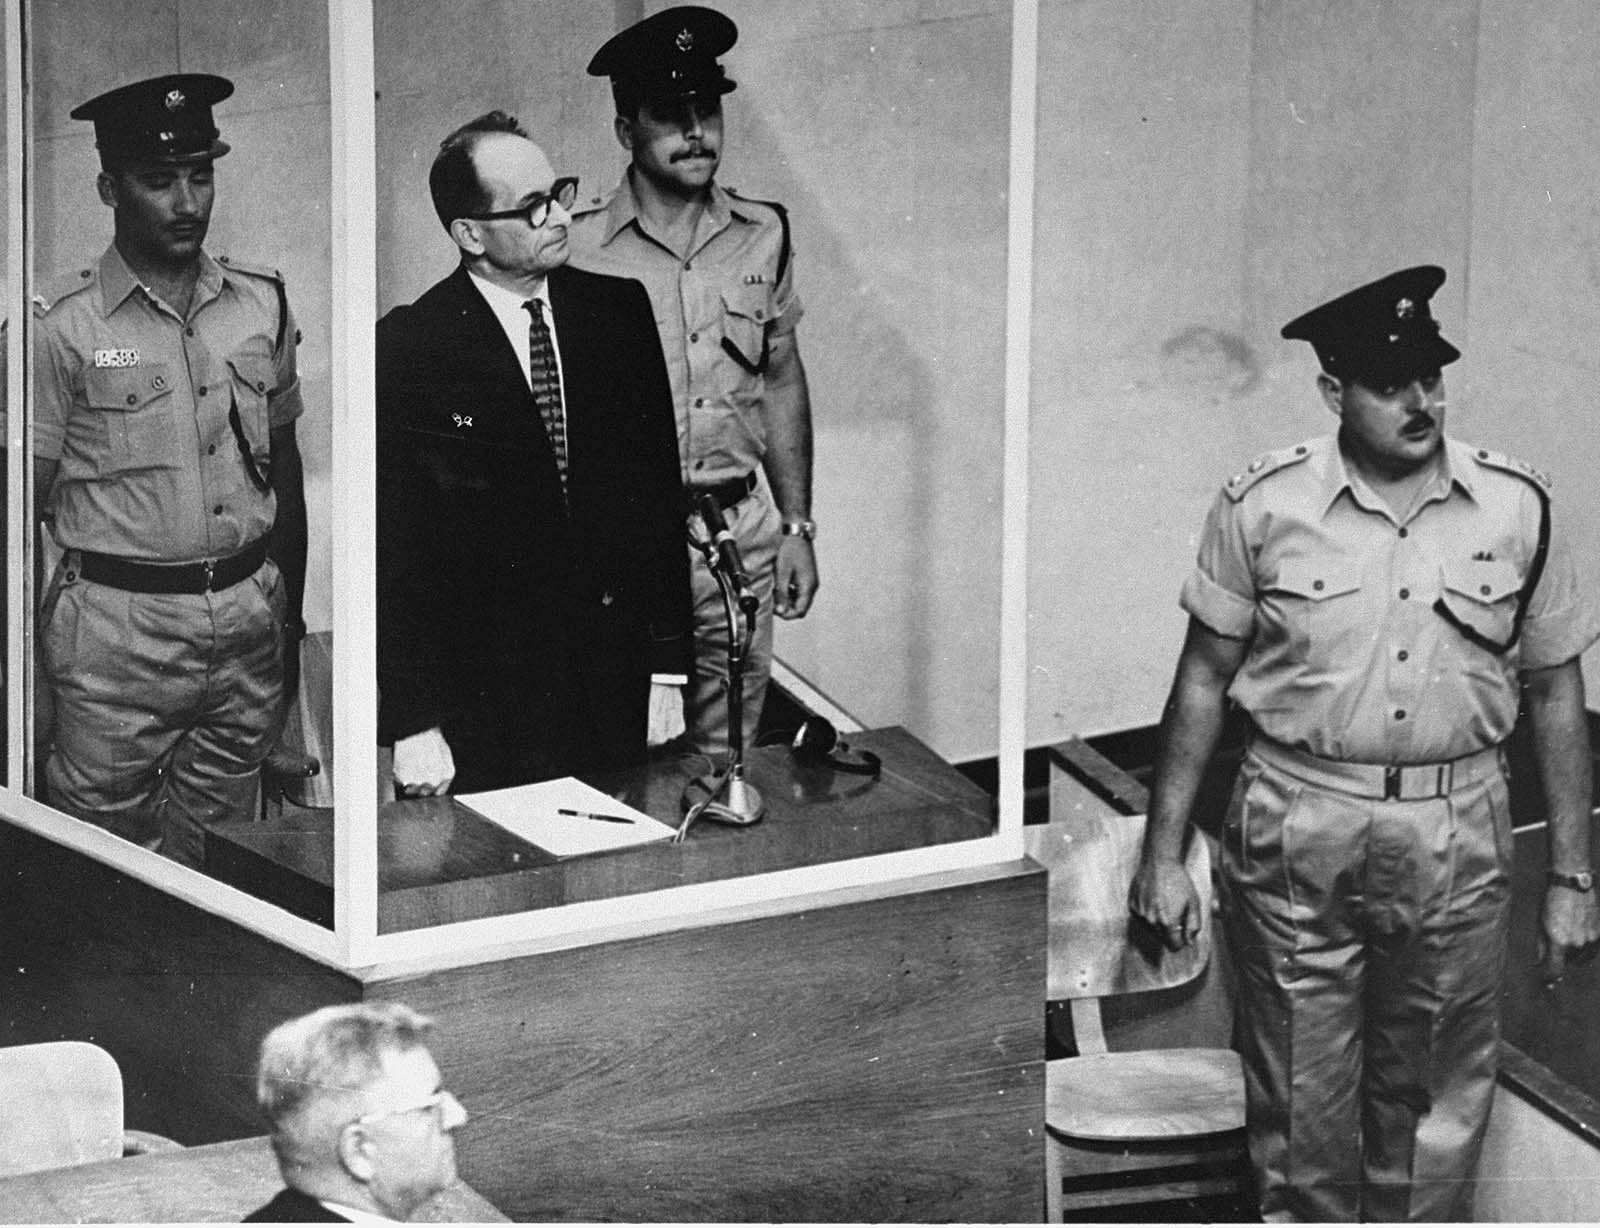 Eichmann was found guilty on all of the charges, and was executed by hanging on 1 June 1962.